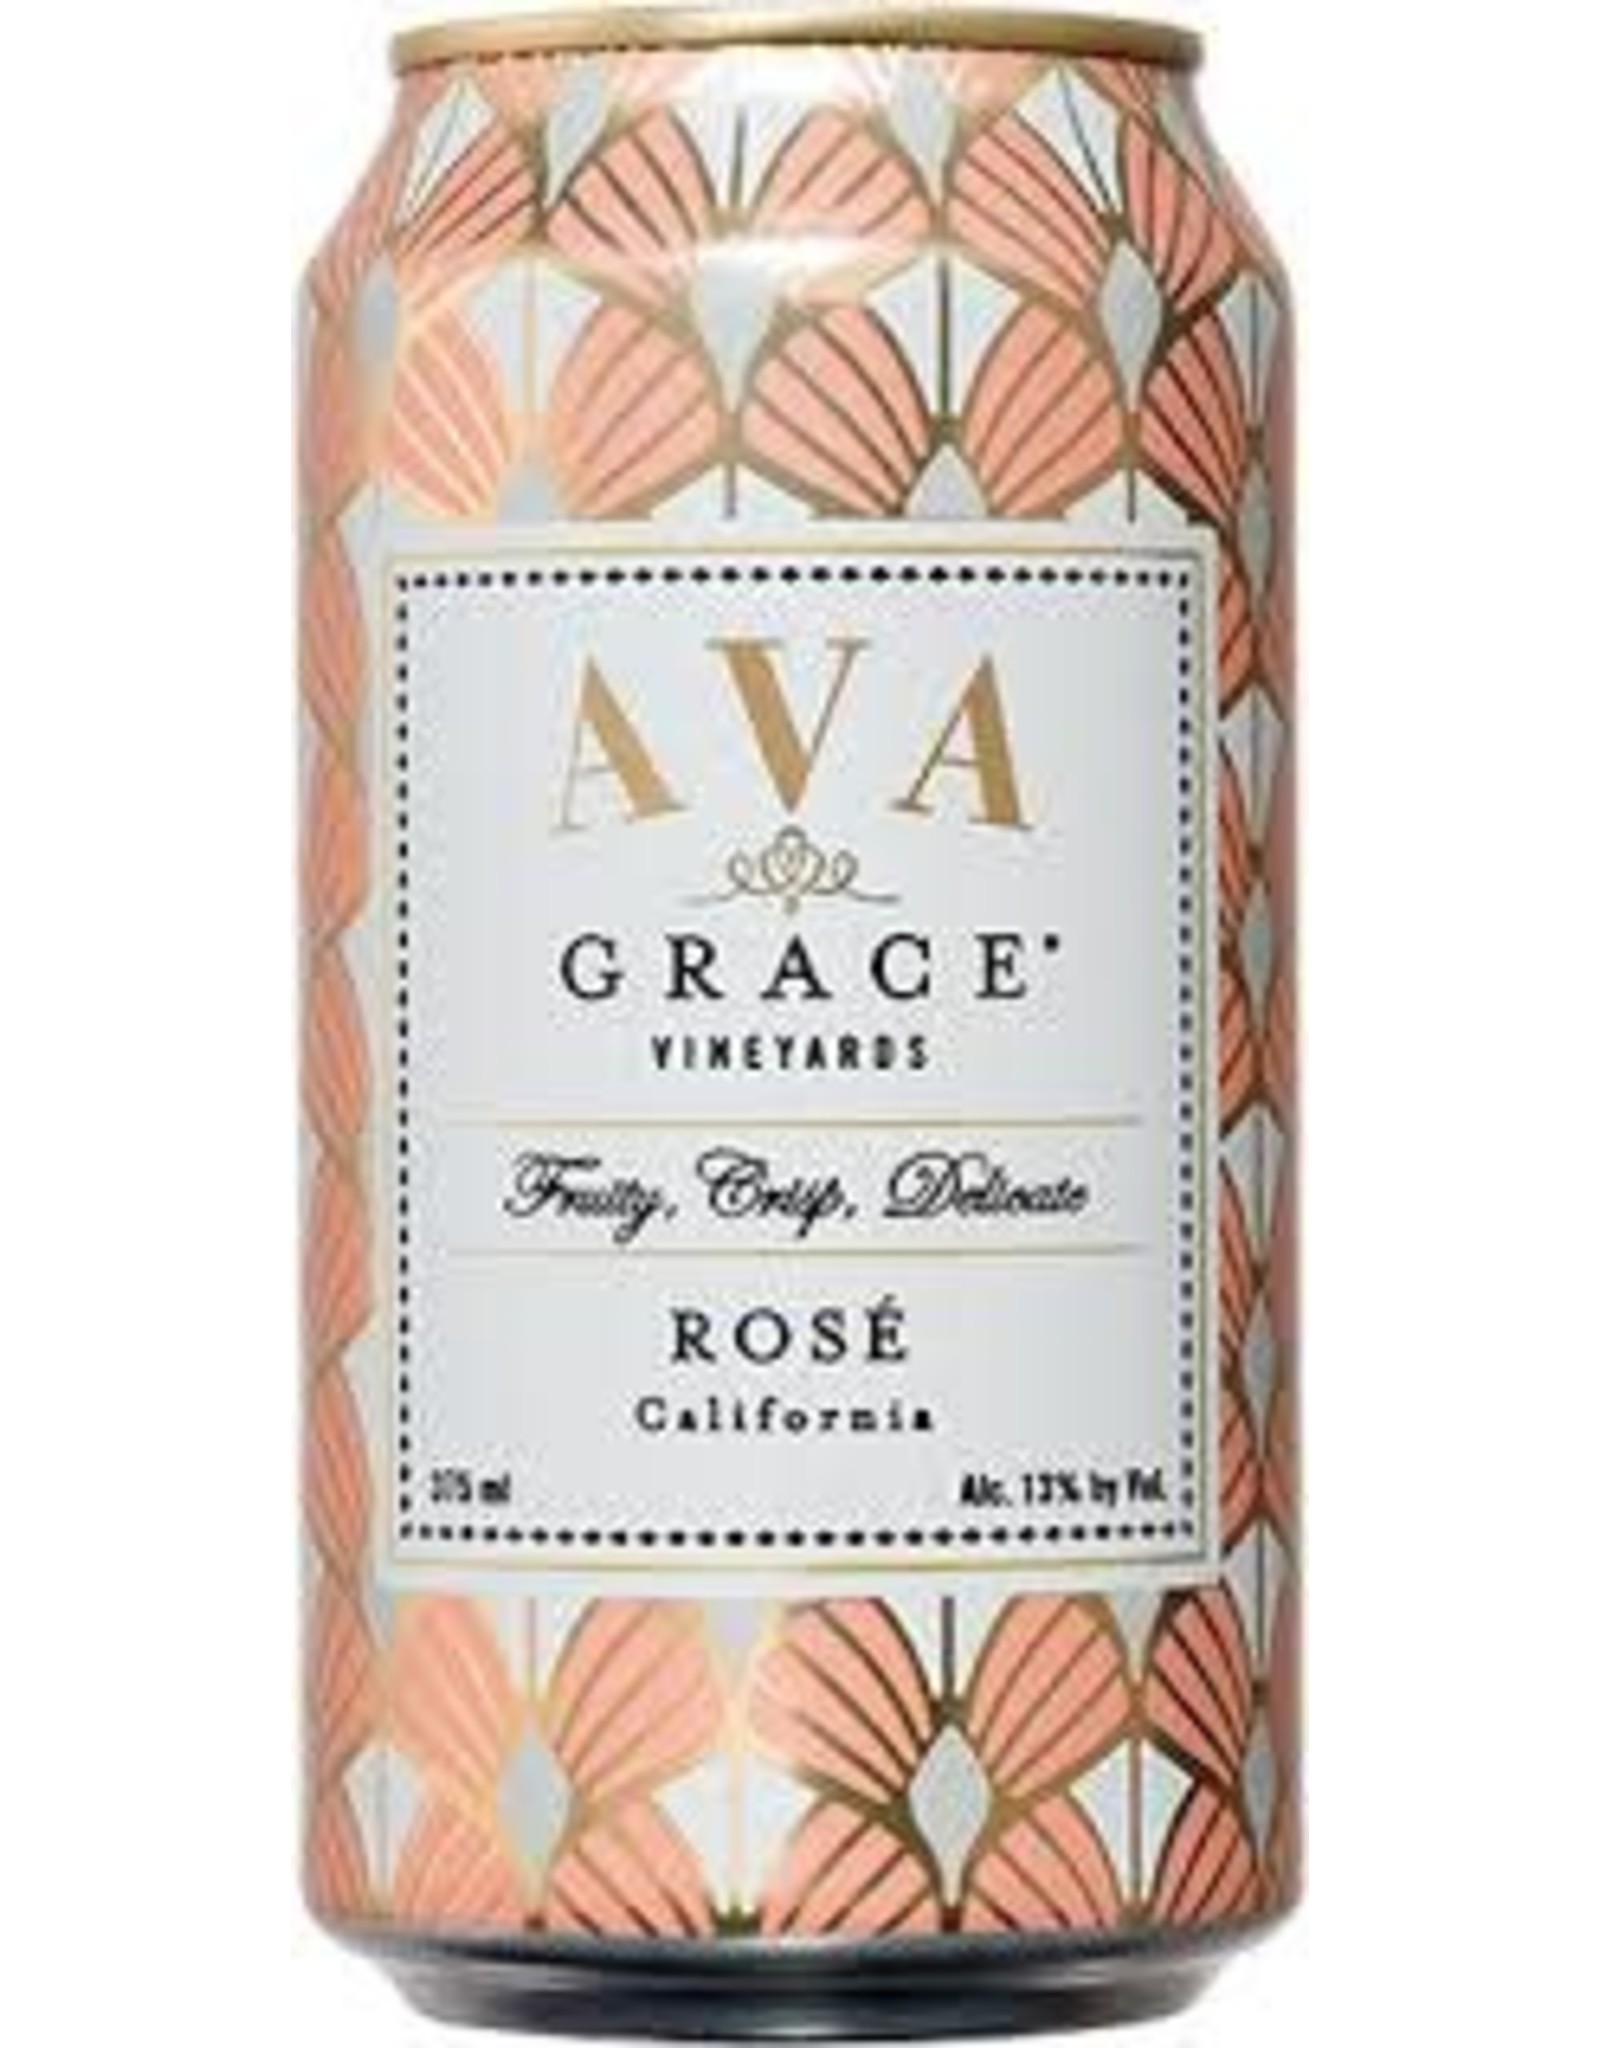 Best Canned Rose Wine